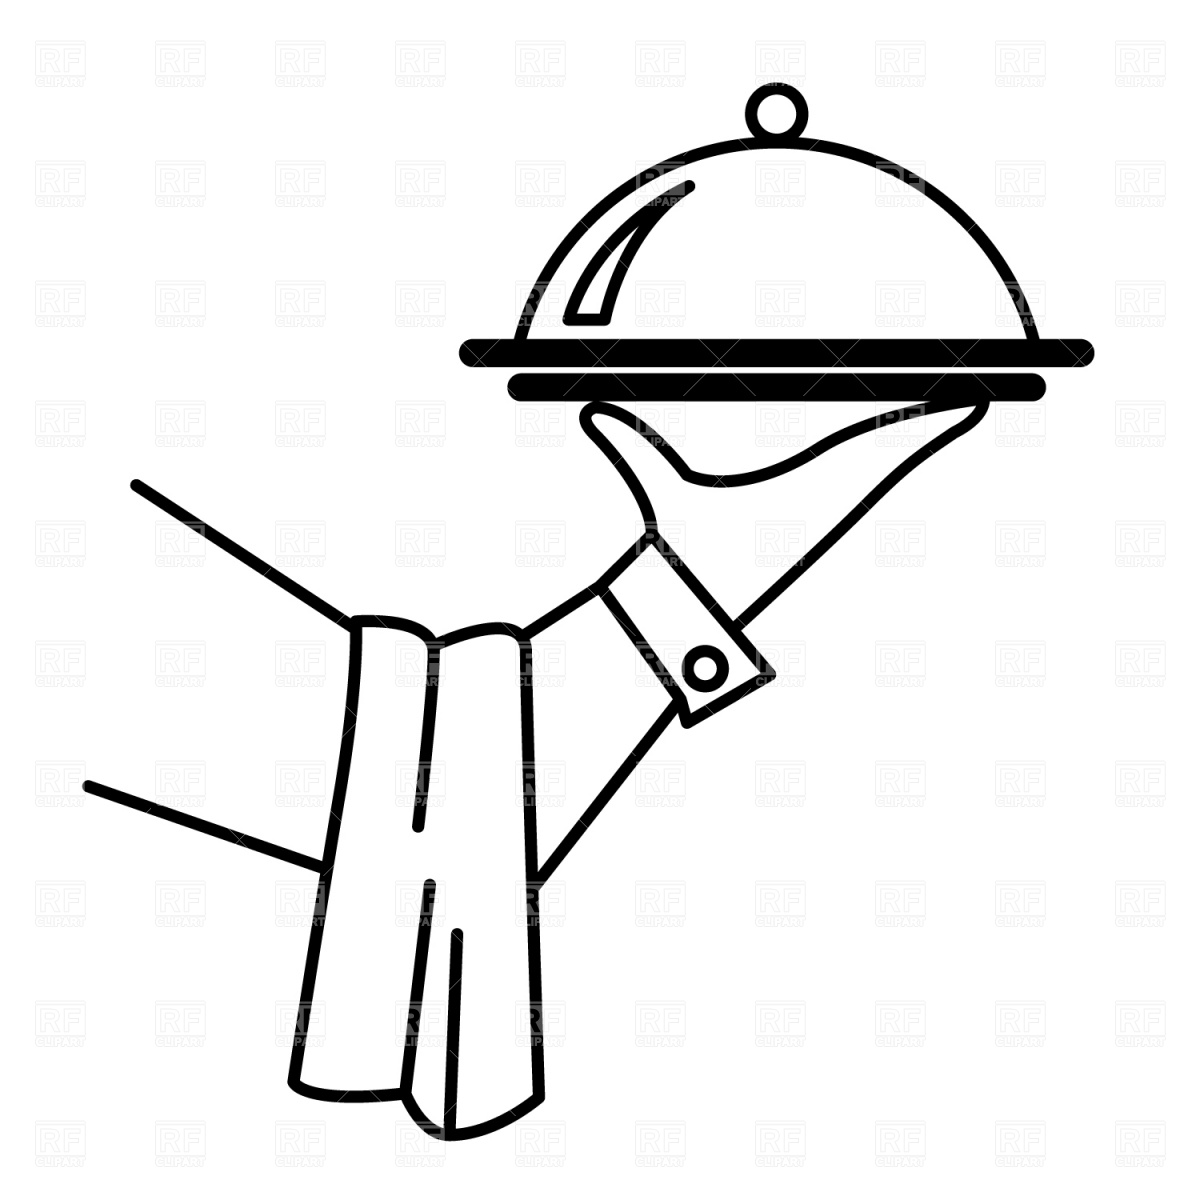 Free Food Catering Cliparts, Download Free Clip Art, Free.